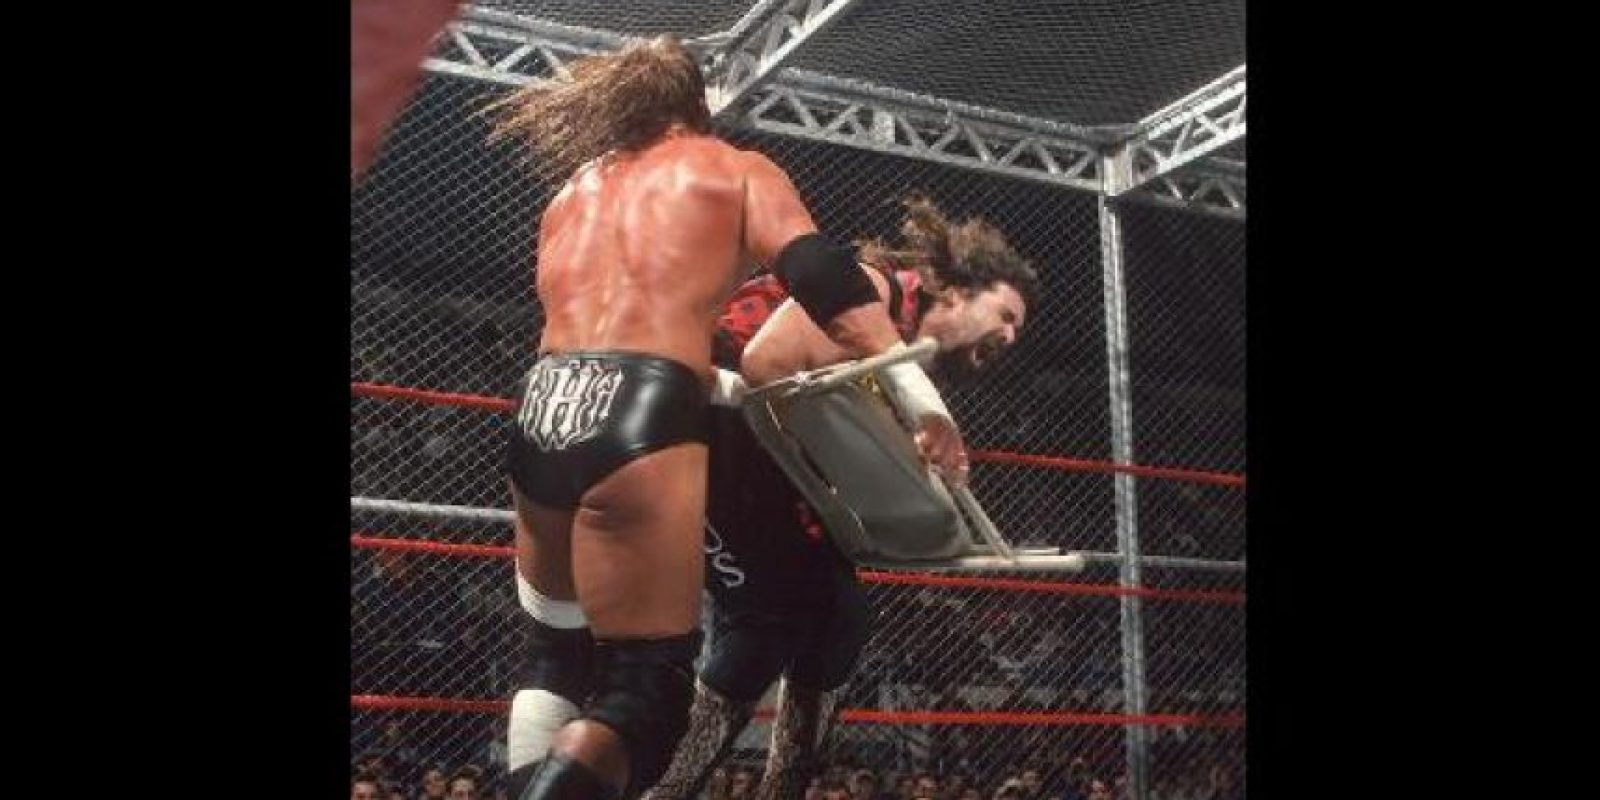 Triple H vs. Mick Foley Foto: WWE